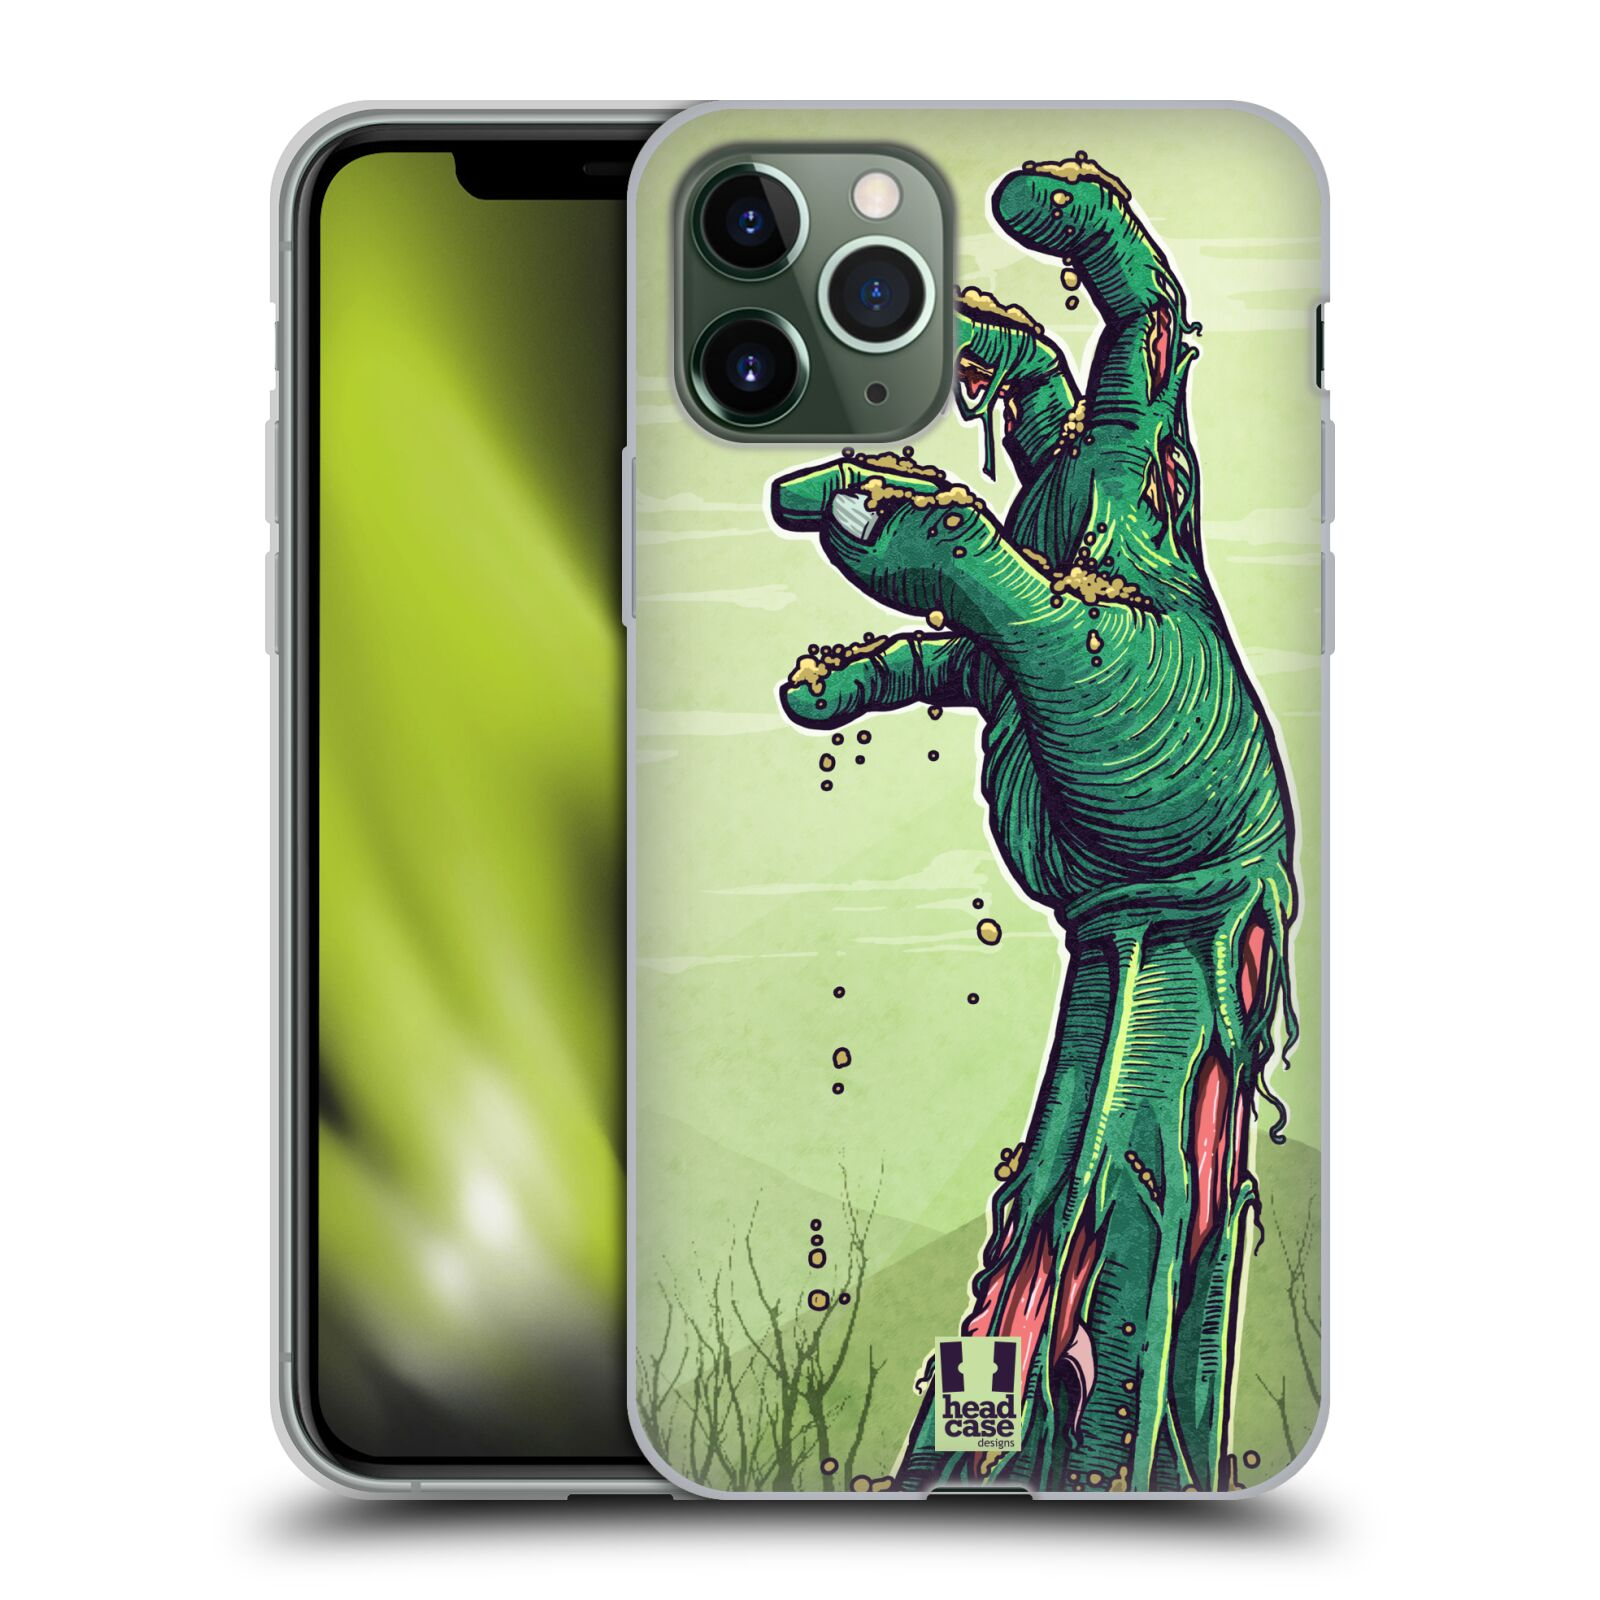 gucci iphone x s case | Silikonové pouzdro na mobil Apple iPhone 11 Pro - Head Case - ZOMBIE RUKA